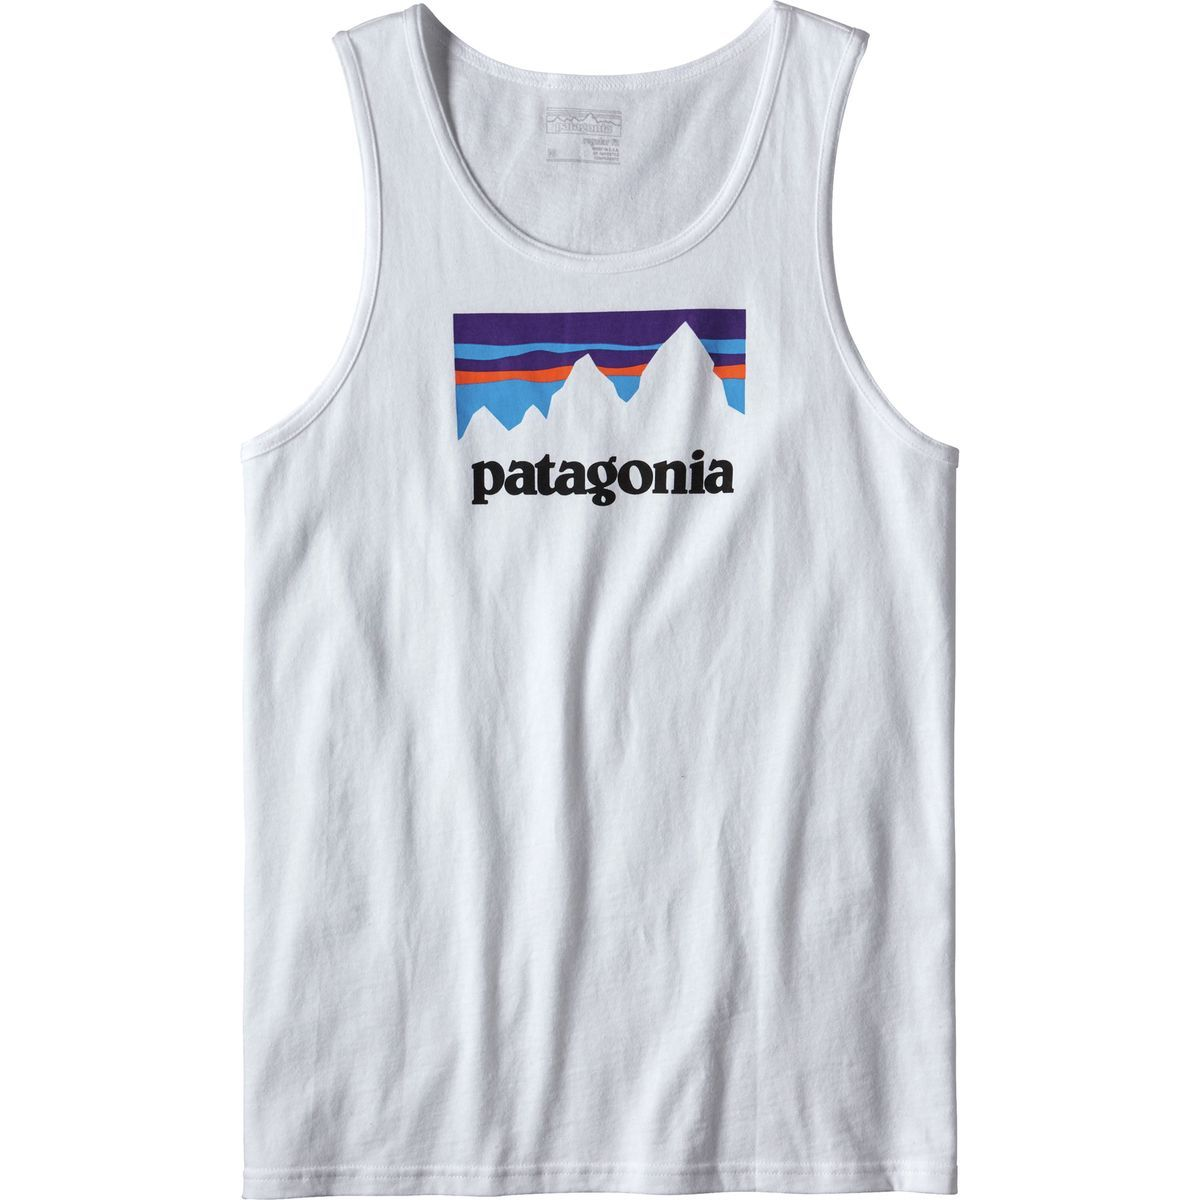 ba849bcc Patagonia Shop Sticker Tank Top White S | Outdoor Accessories ...